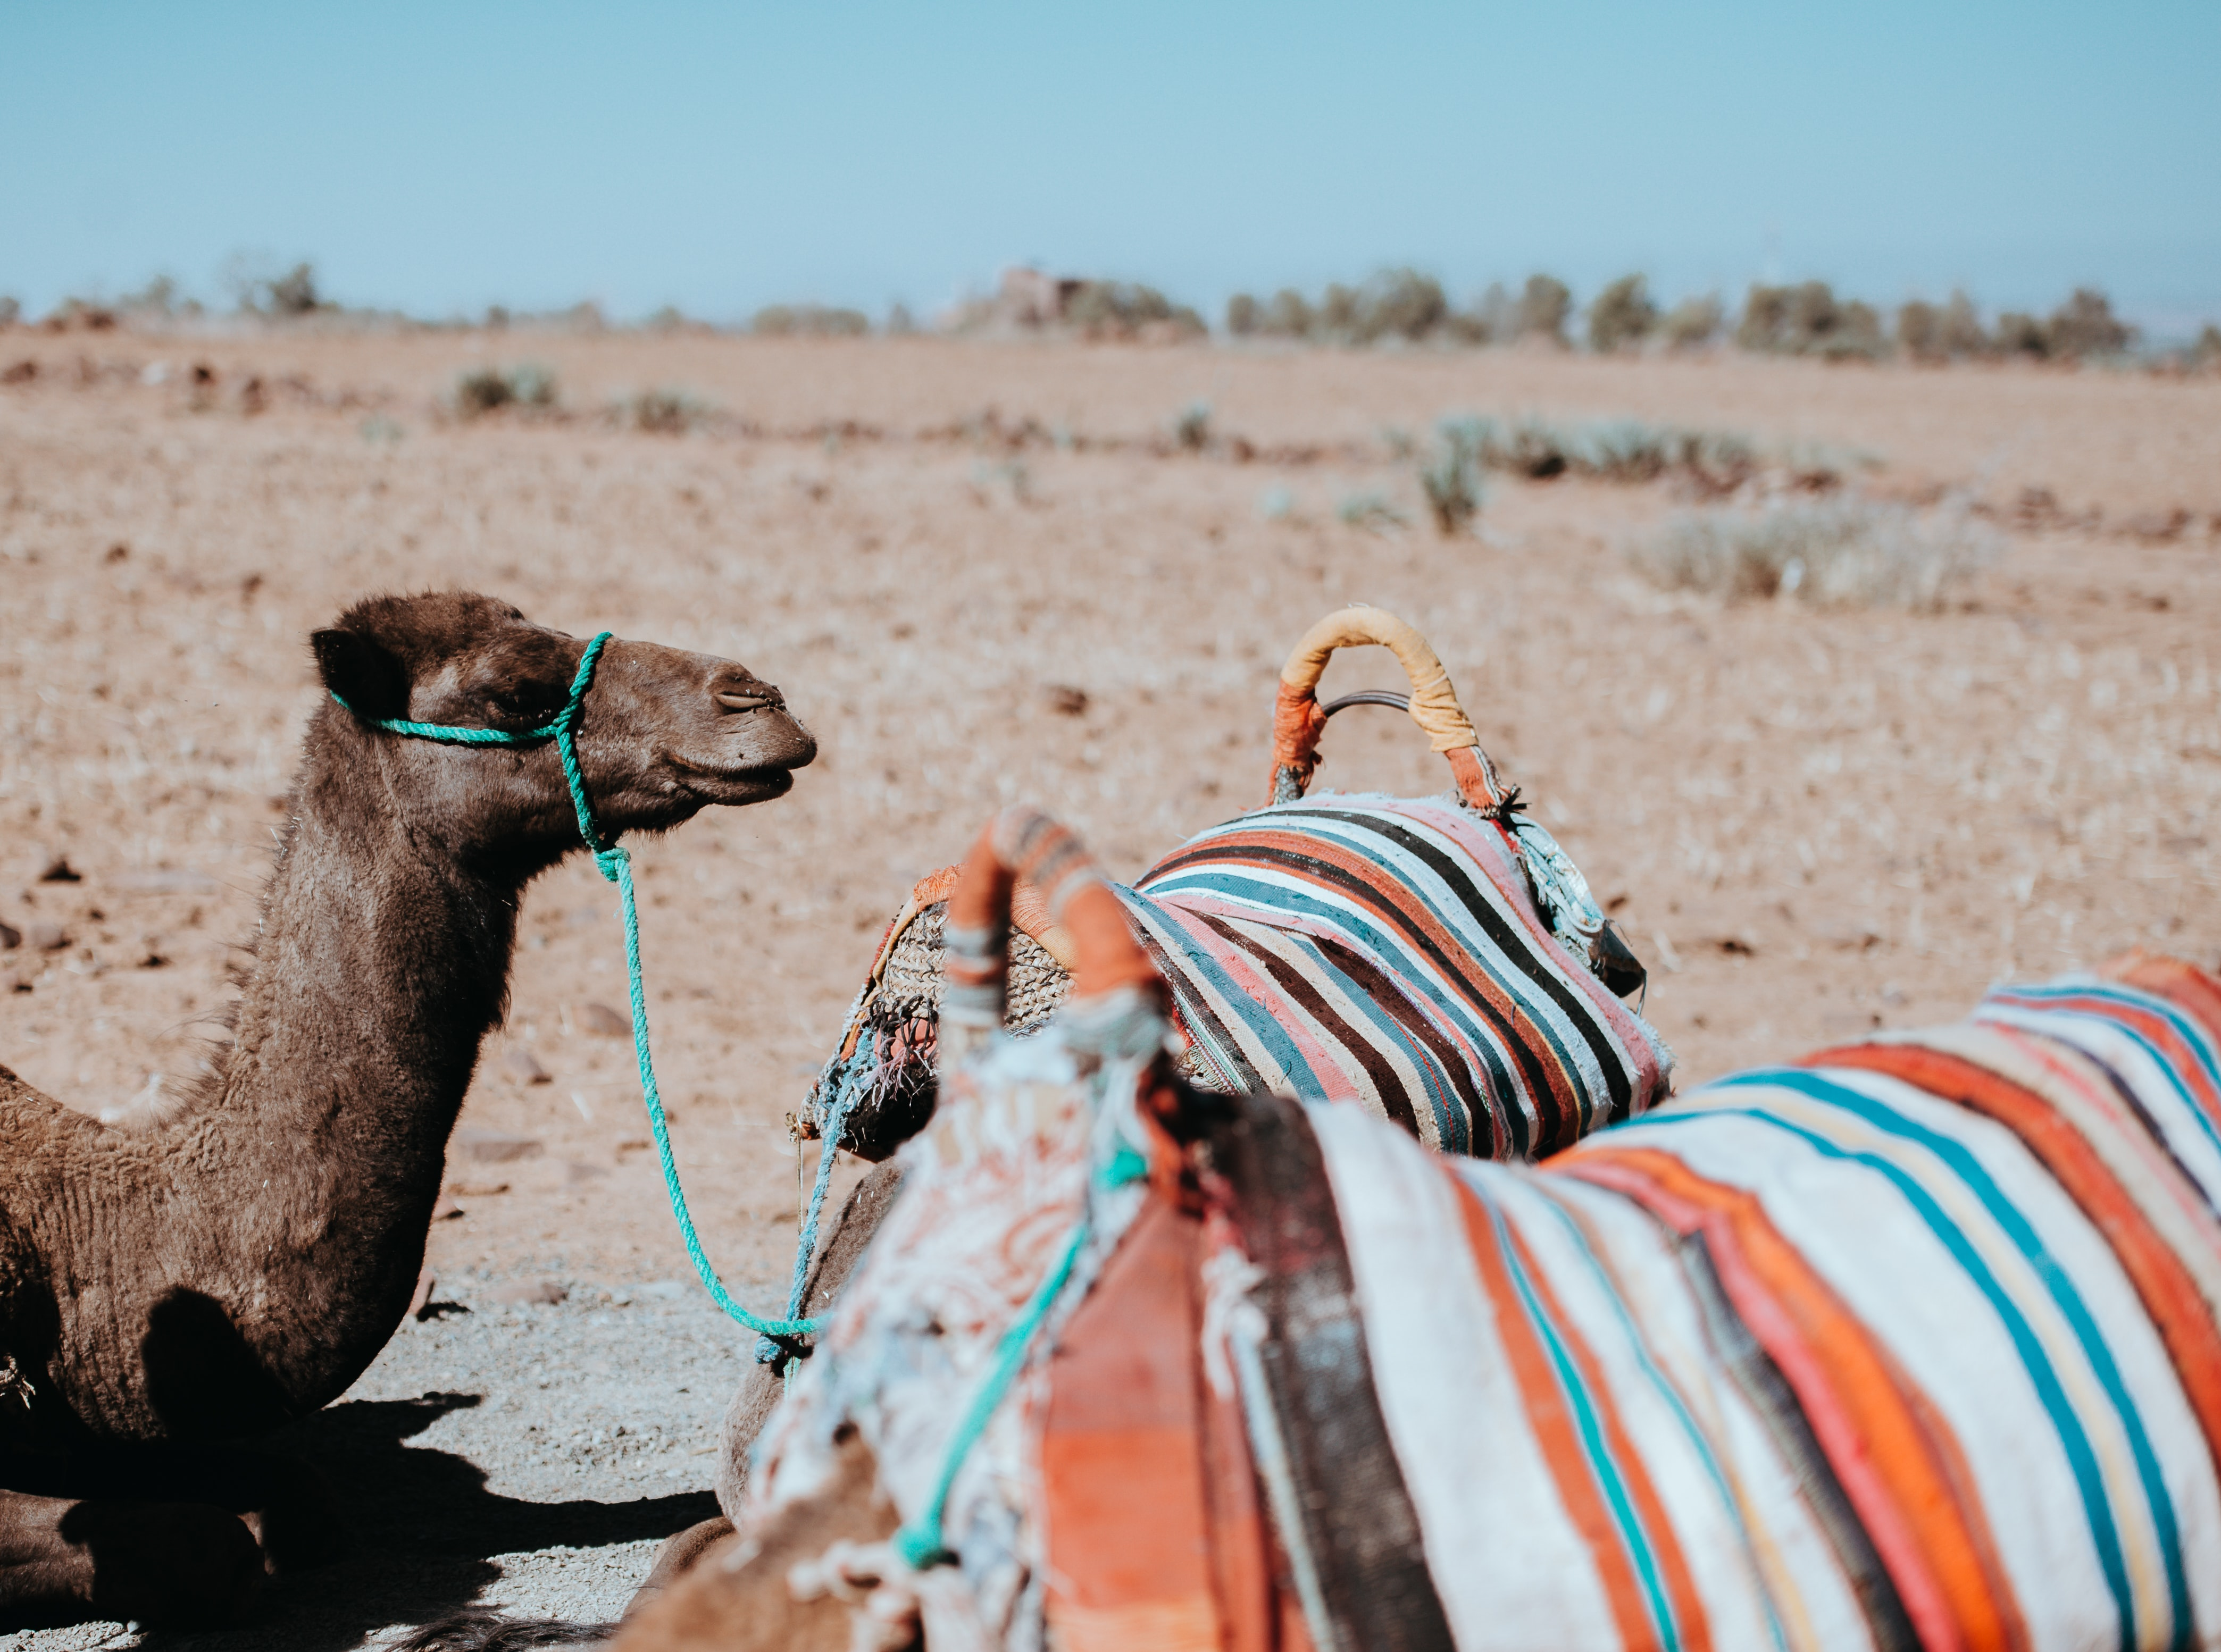 brown camel sitting on desert during daytime